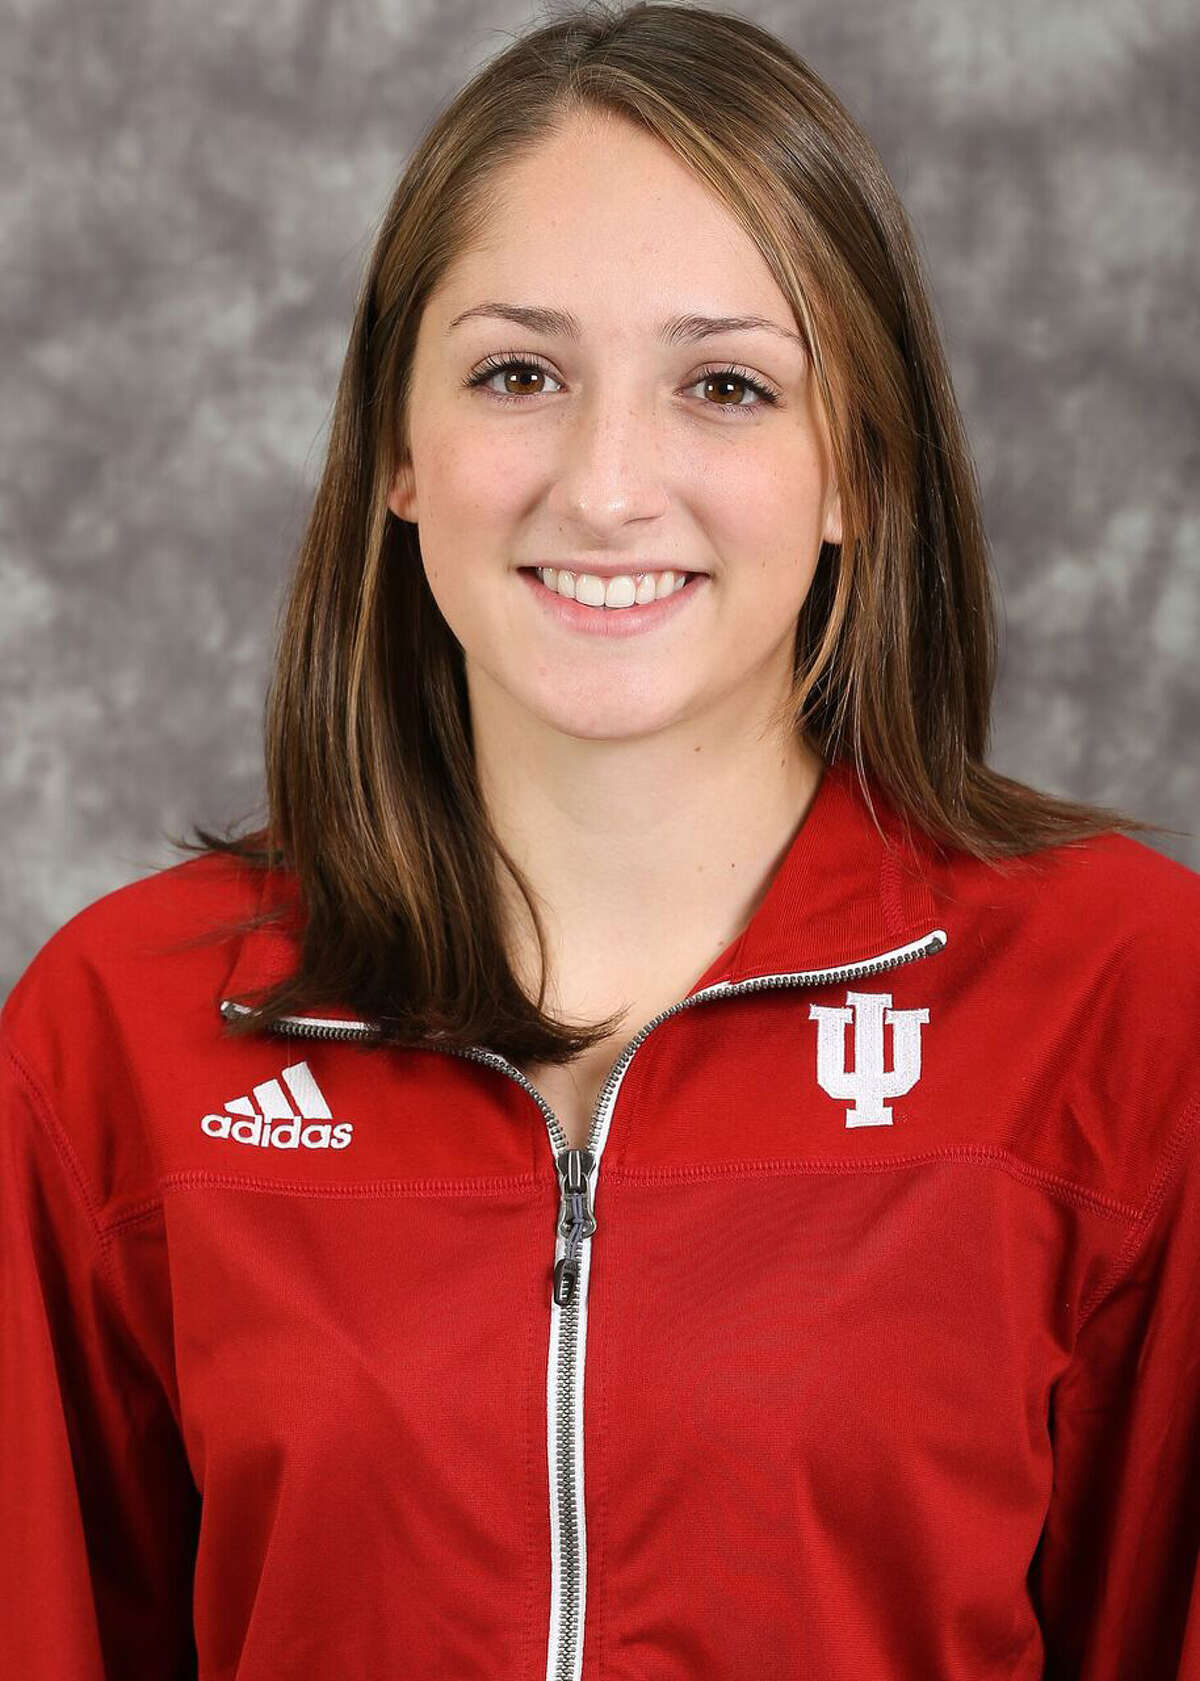 Albany Academy for Girls graduate Leah Moran of the Indiana indoor track team. (Zach Reitzug/Indiana Athletics)